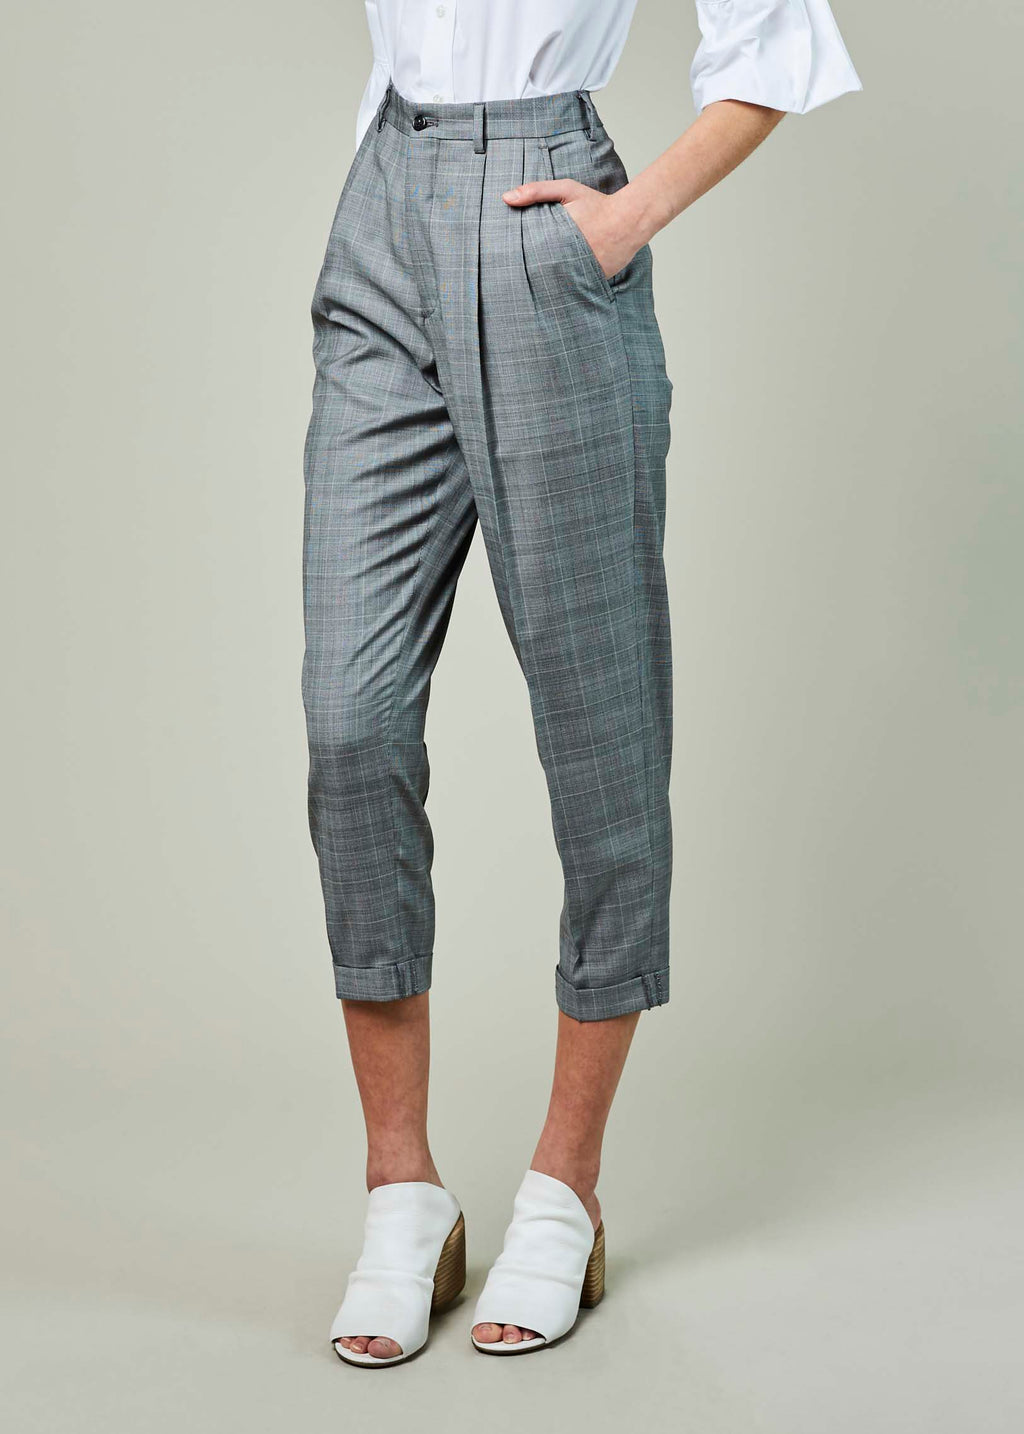 Glen Plaid Pegged Pant